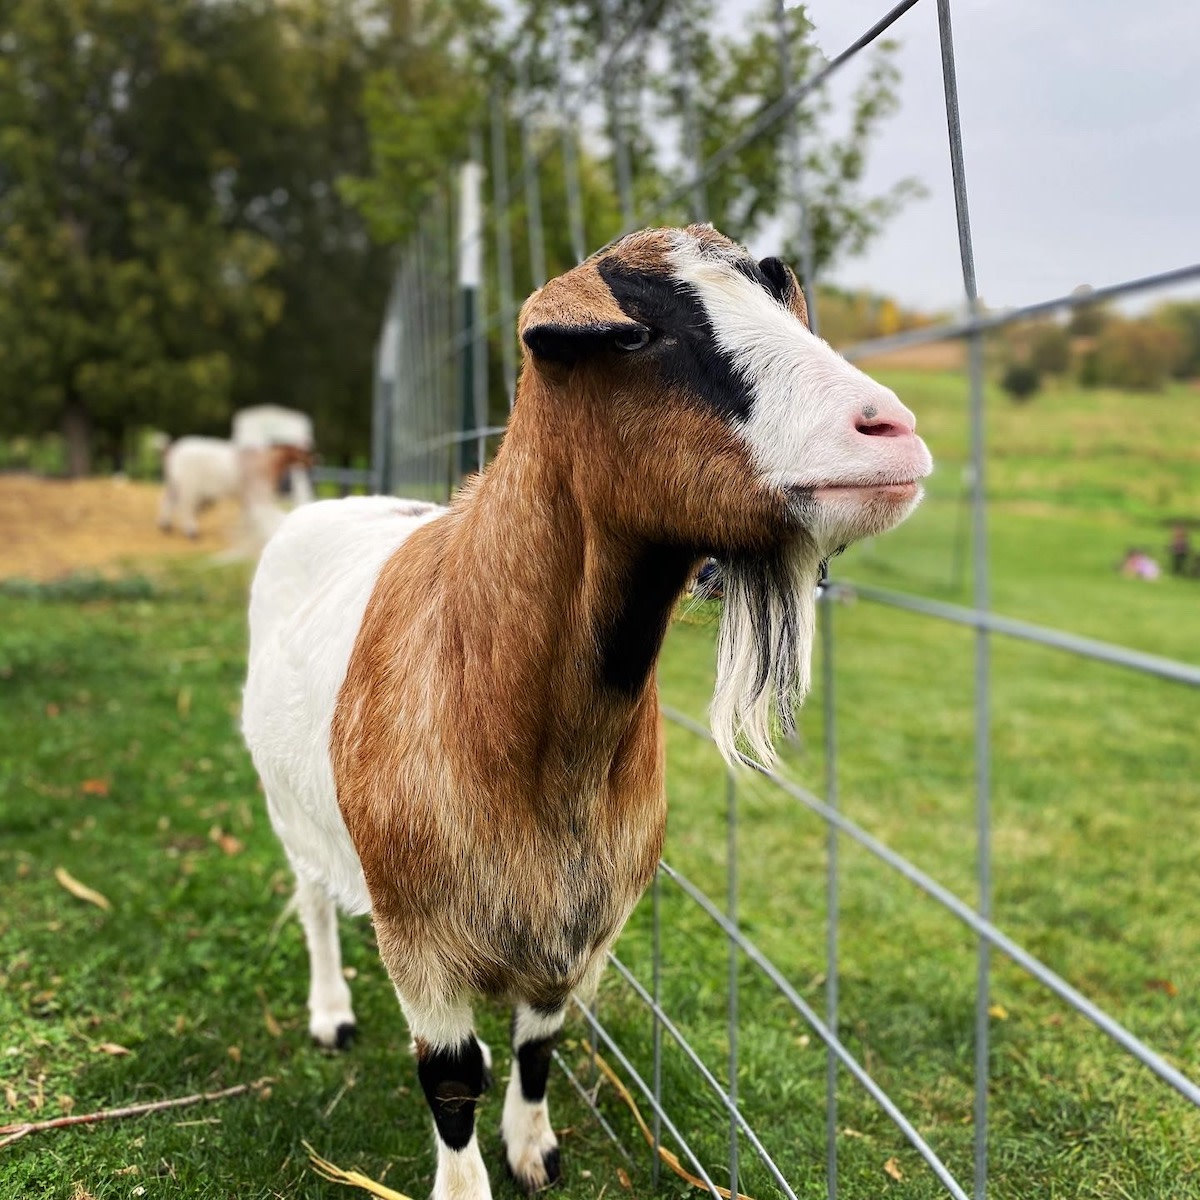 A goat at LuceLine Apple Orchard near Watertown.